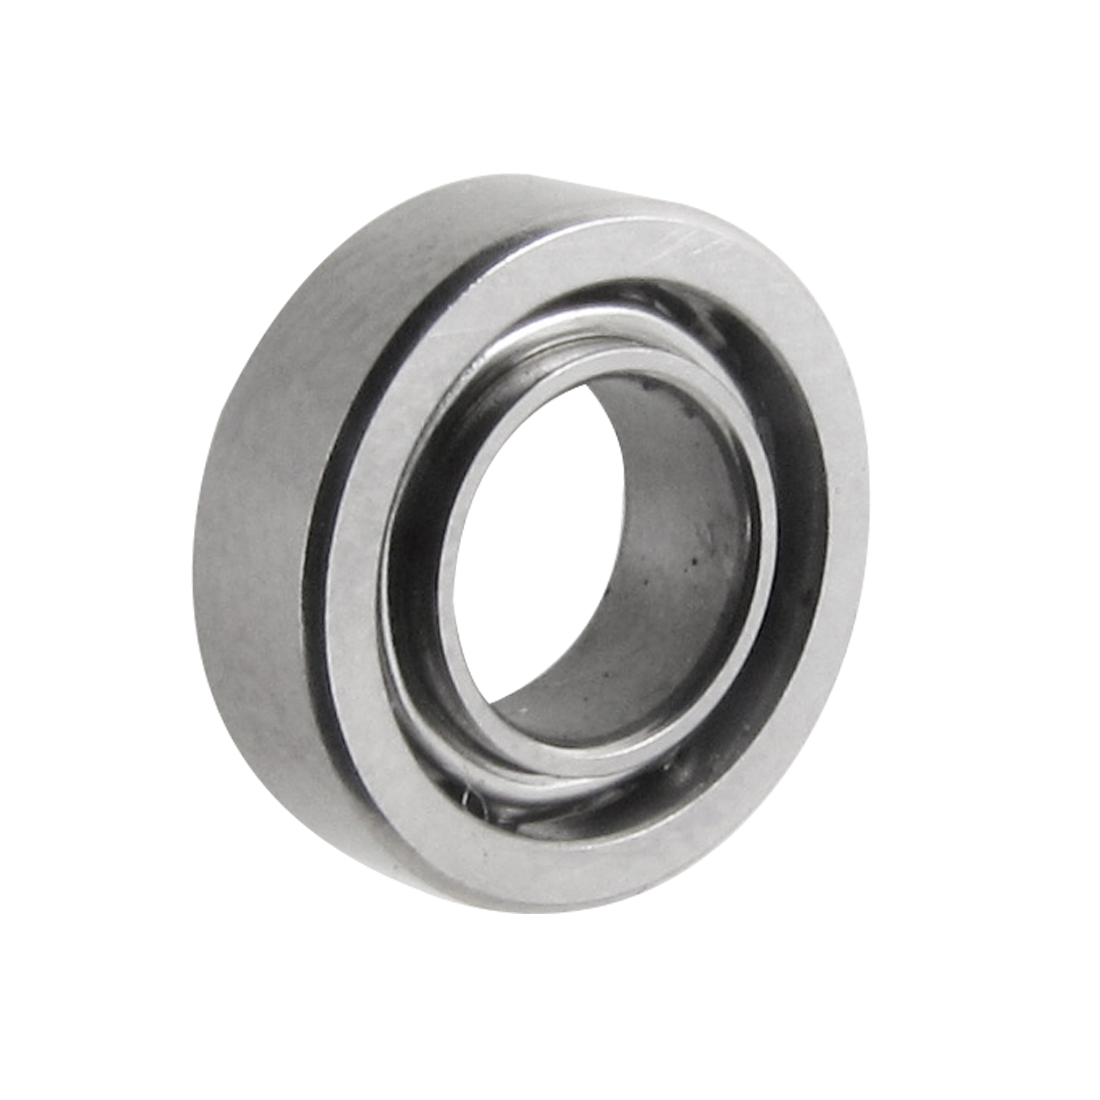 10mm x 5mm x 3mm Non Sealed Electric Hammer Deep Groove Ball Bearing Silver Tone